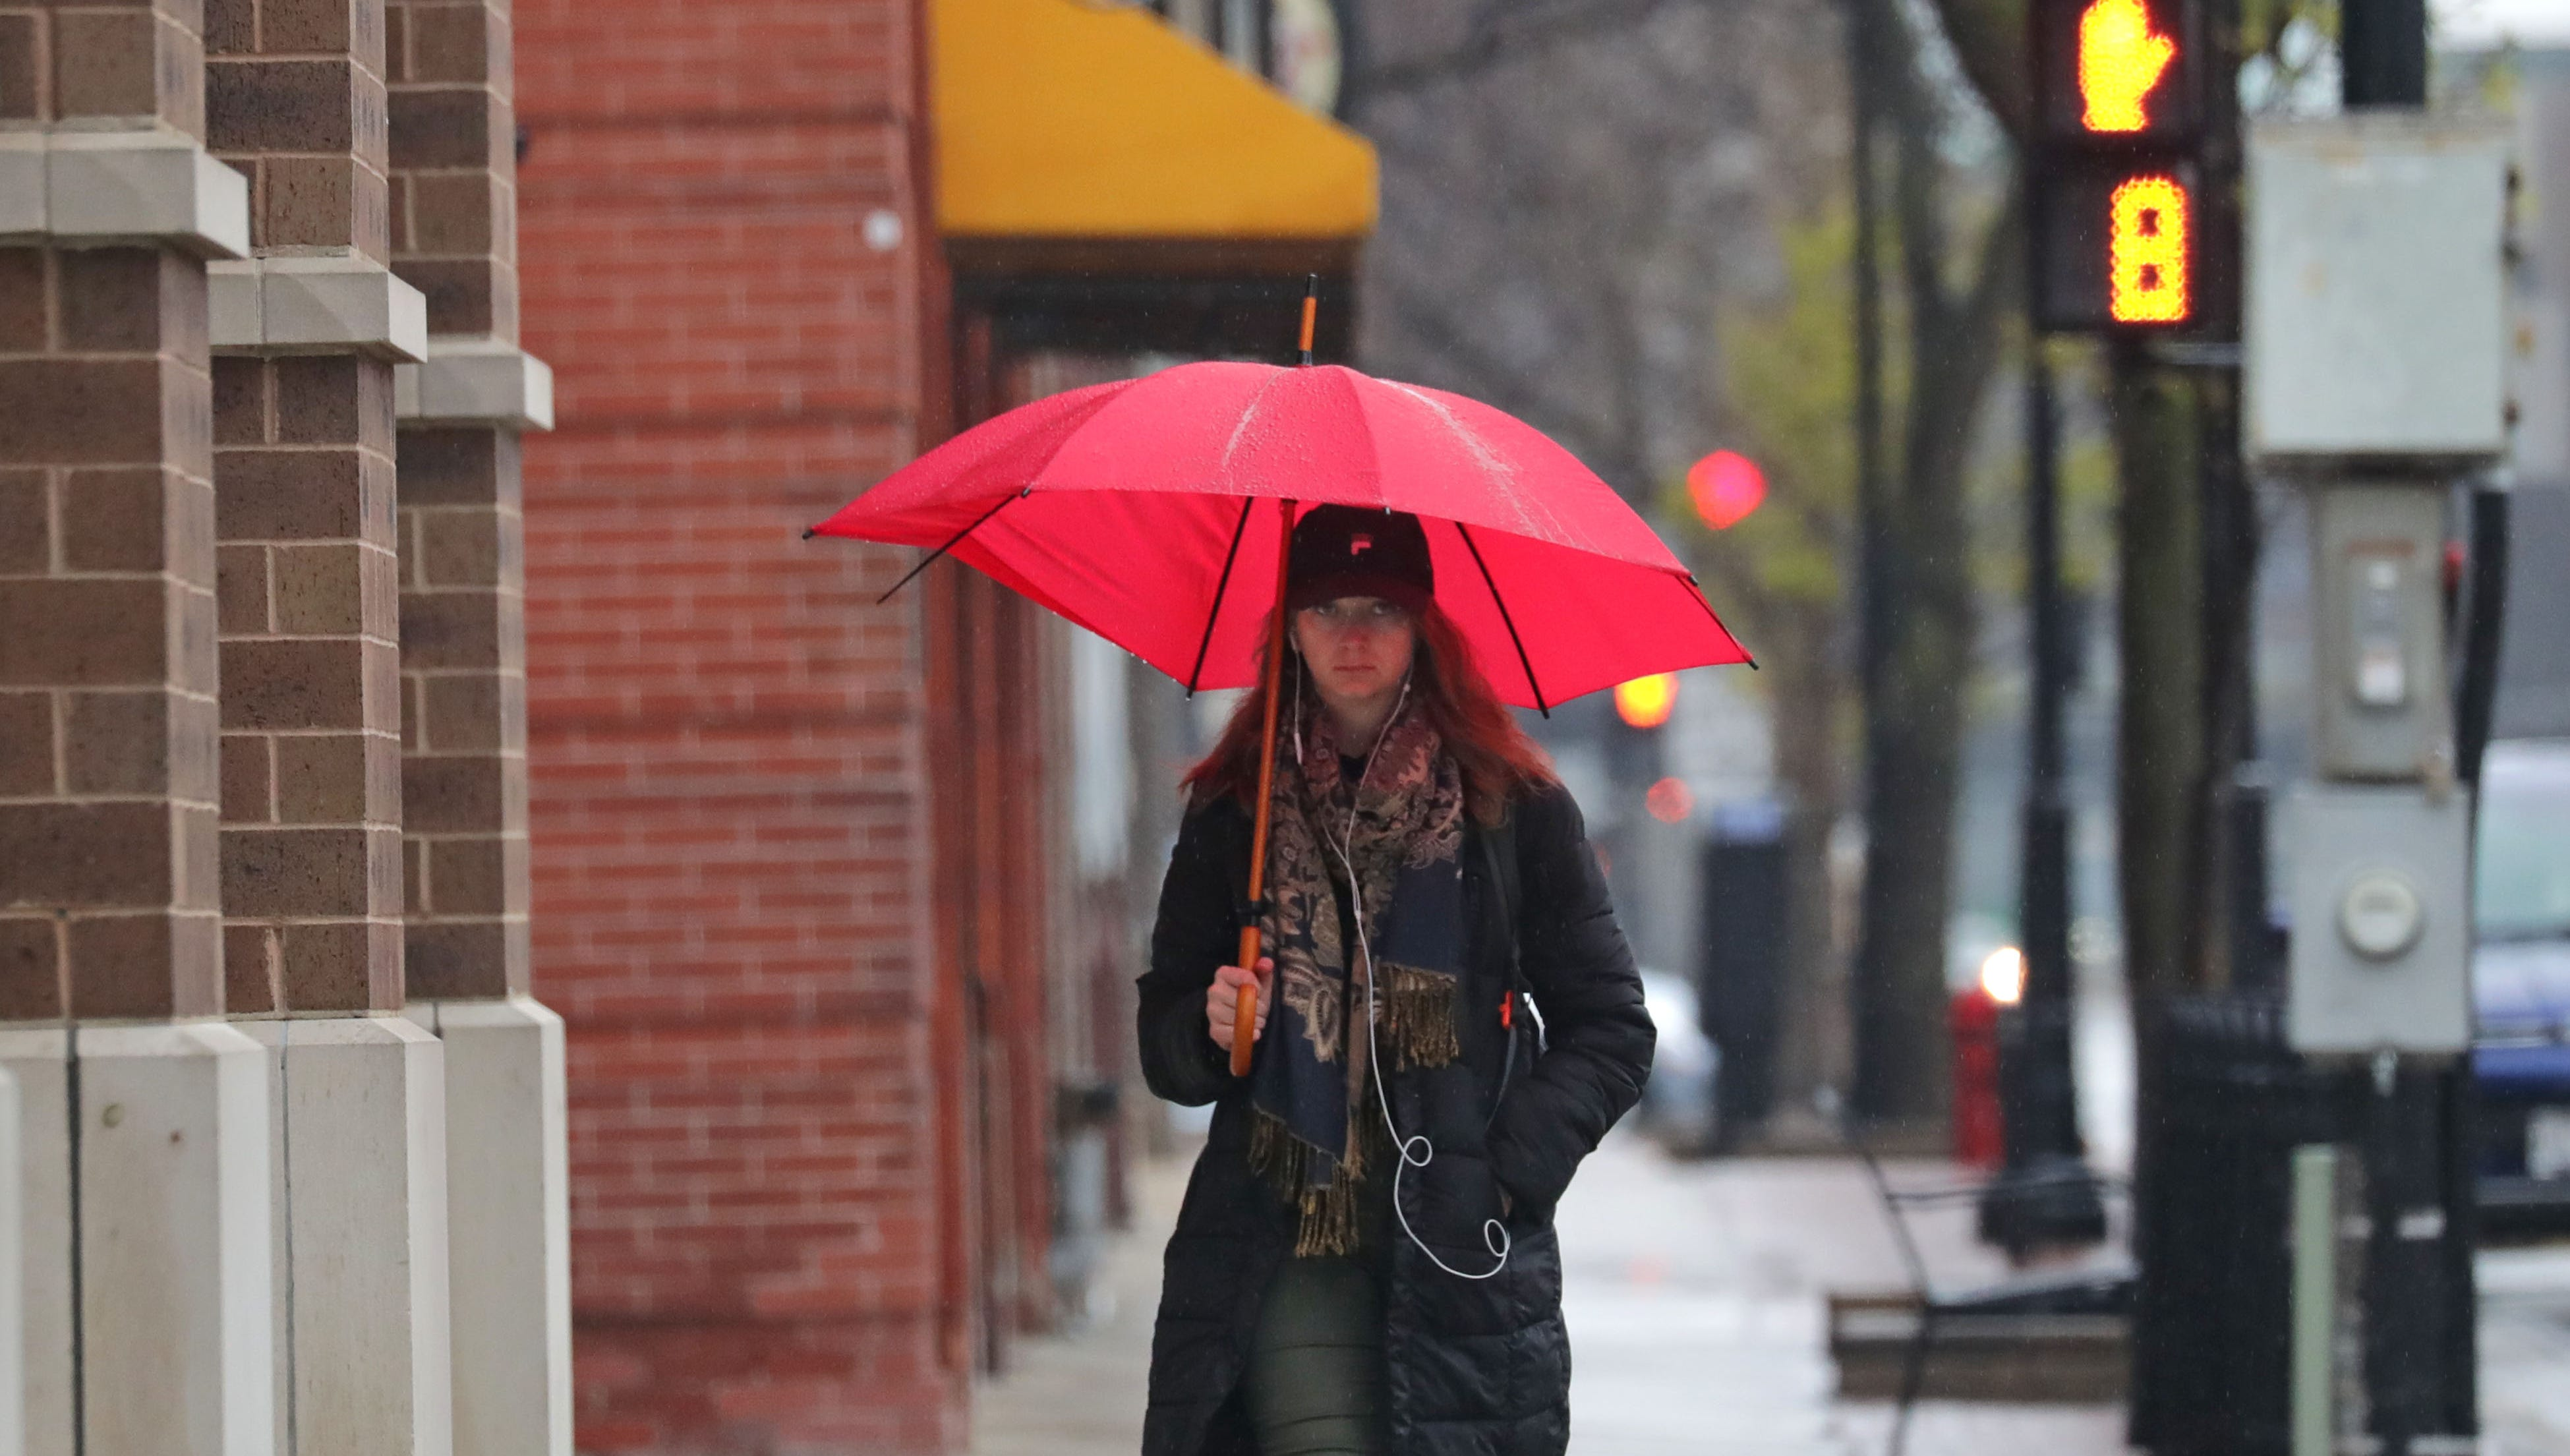 Samantha Bilgrien, of the Milwaukee walks in the rain on her way to work down North Old World 3rd Street near W. Highland Ave. in Milwaukee on Thursday, May 2, 2019. Weather Photo by Mike De Sisti/Milwaukee Journal Sentinel